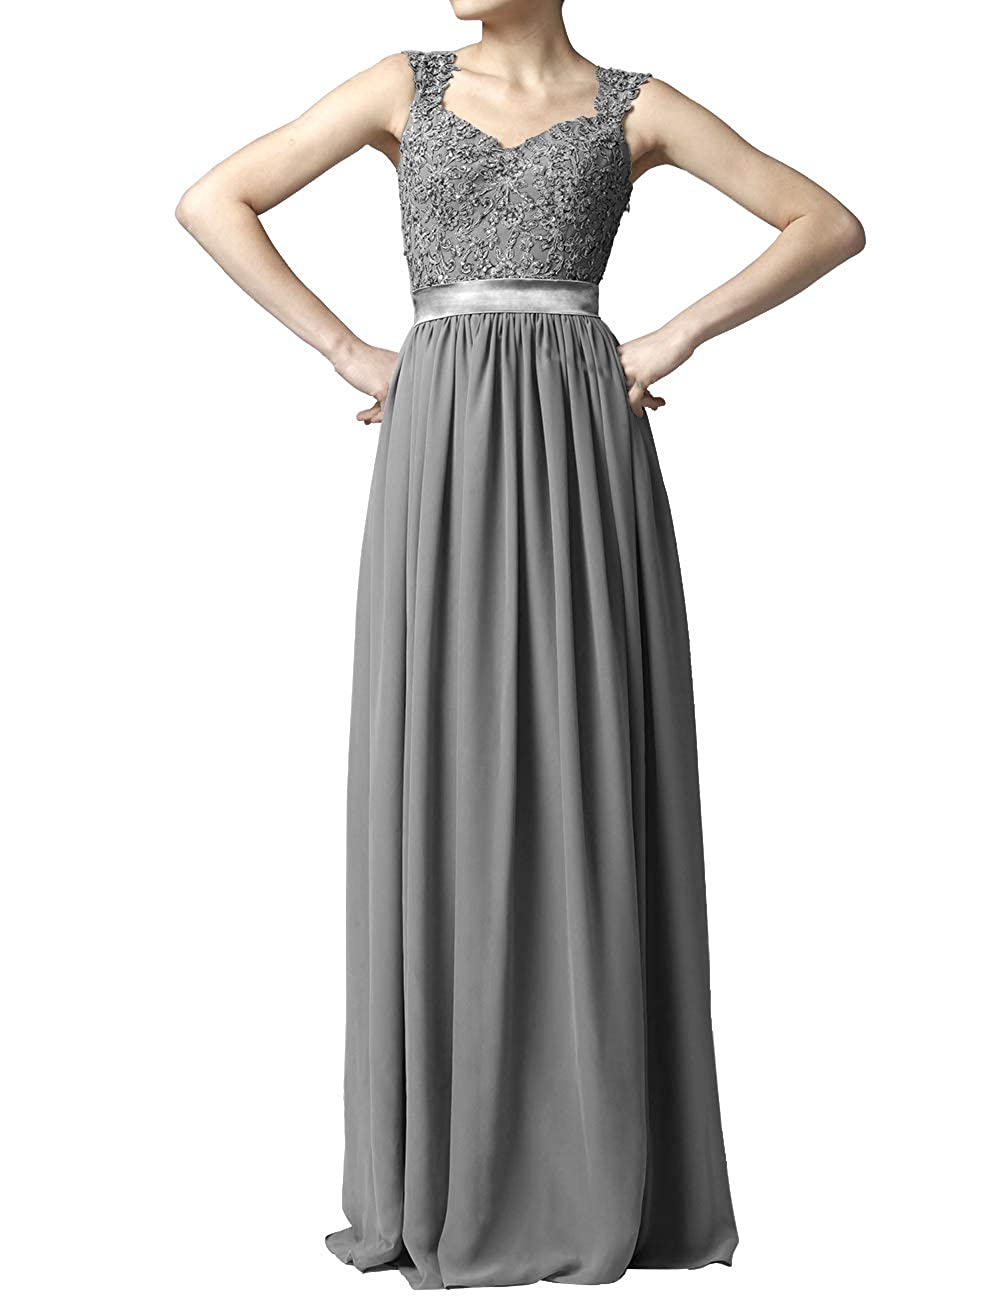 Steel Grey Women' Cap Sleeve Lace Bridesmaid Dresses Long Wedding Party Gowns